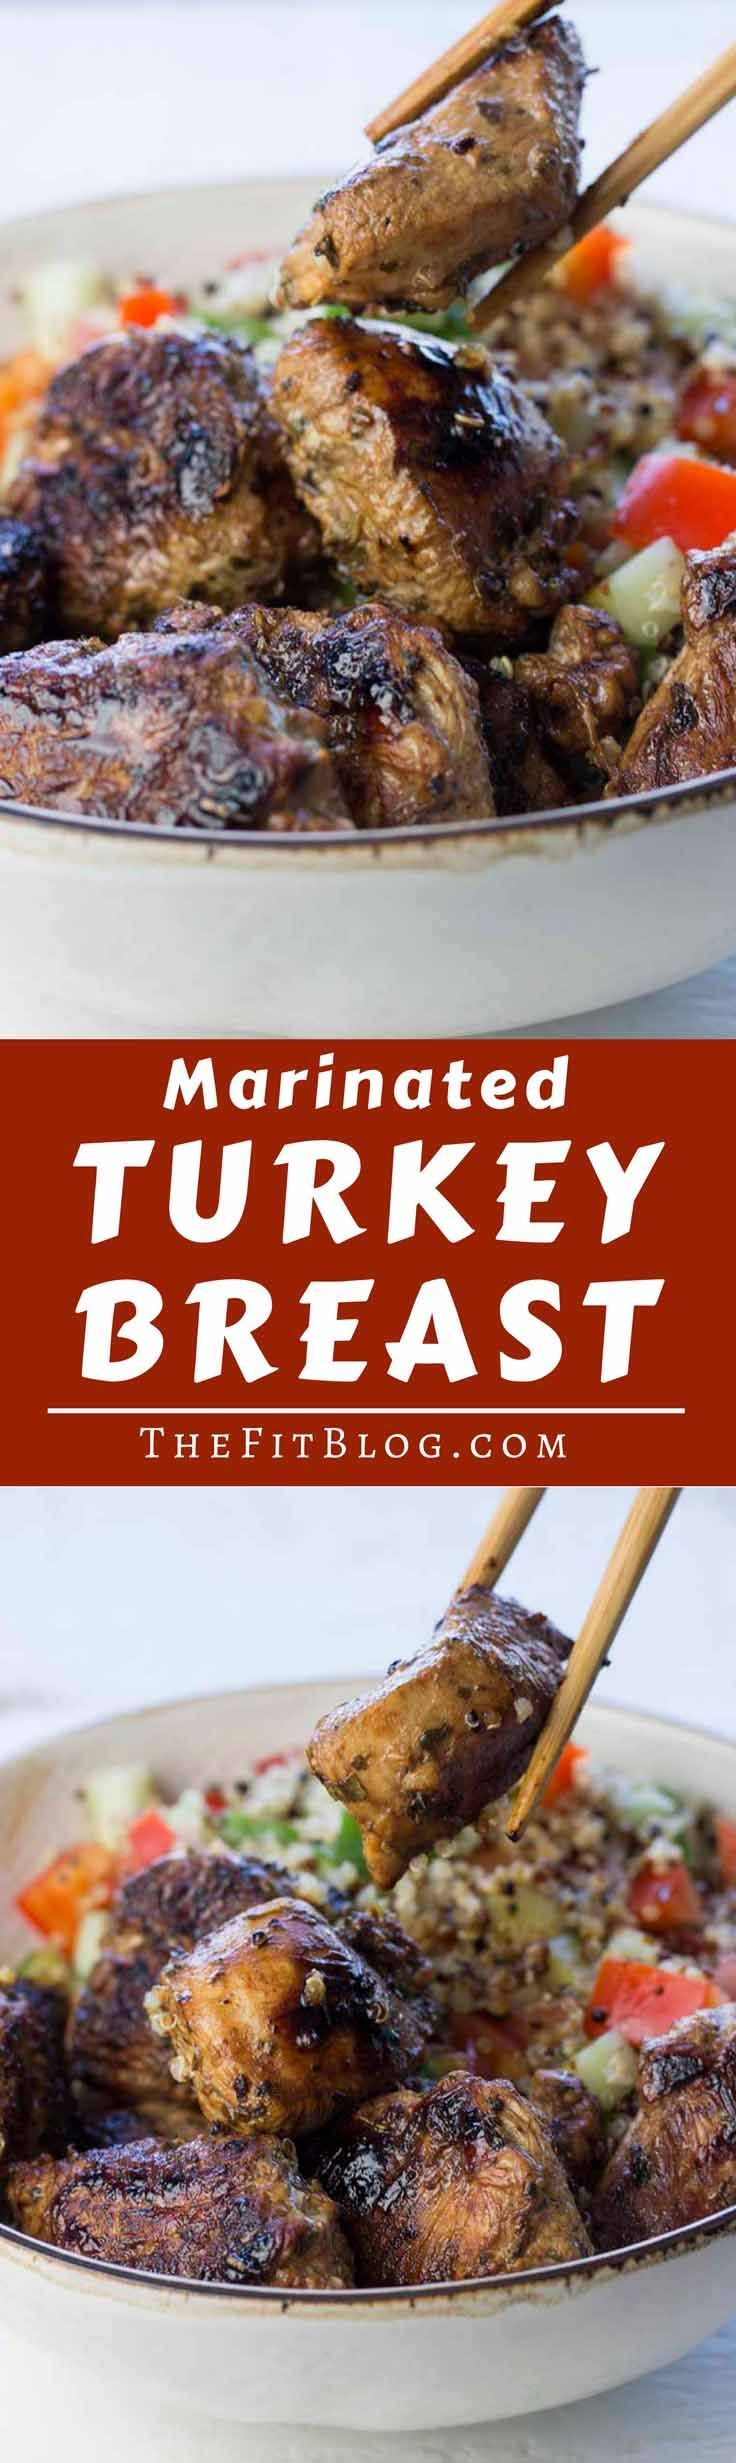 The best marinated turkey breast! This marinade is what takes turkey breast from being slightly boring to being absolutely delicious! | high protein | low carb | sugar free | gluten free | diabetes friendly | Paleo | via @TheFitBlog